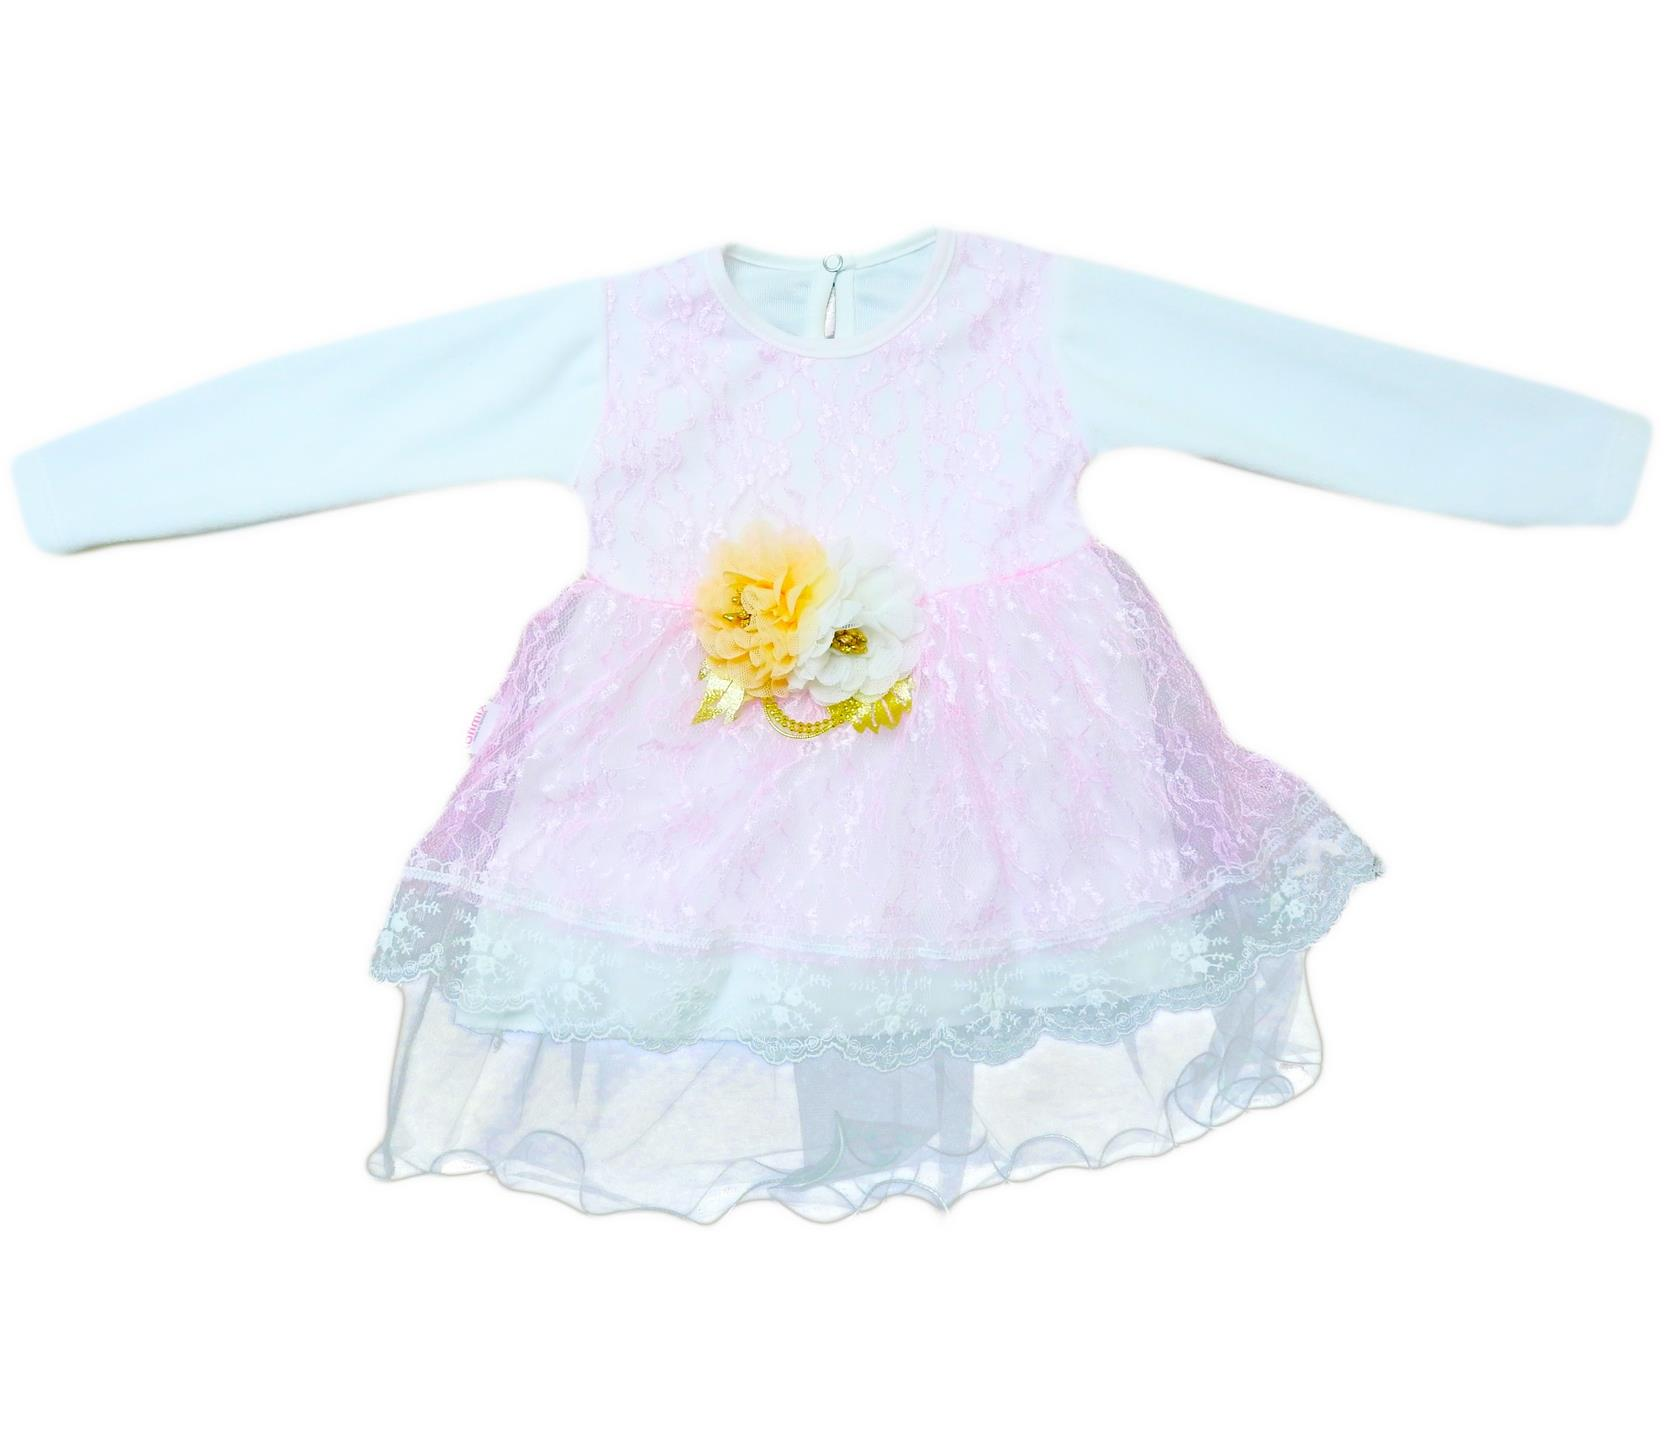 735 Wholesale lance and velvet detailed drees for girl babies  6-12-18 month